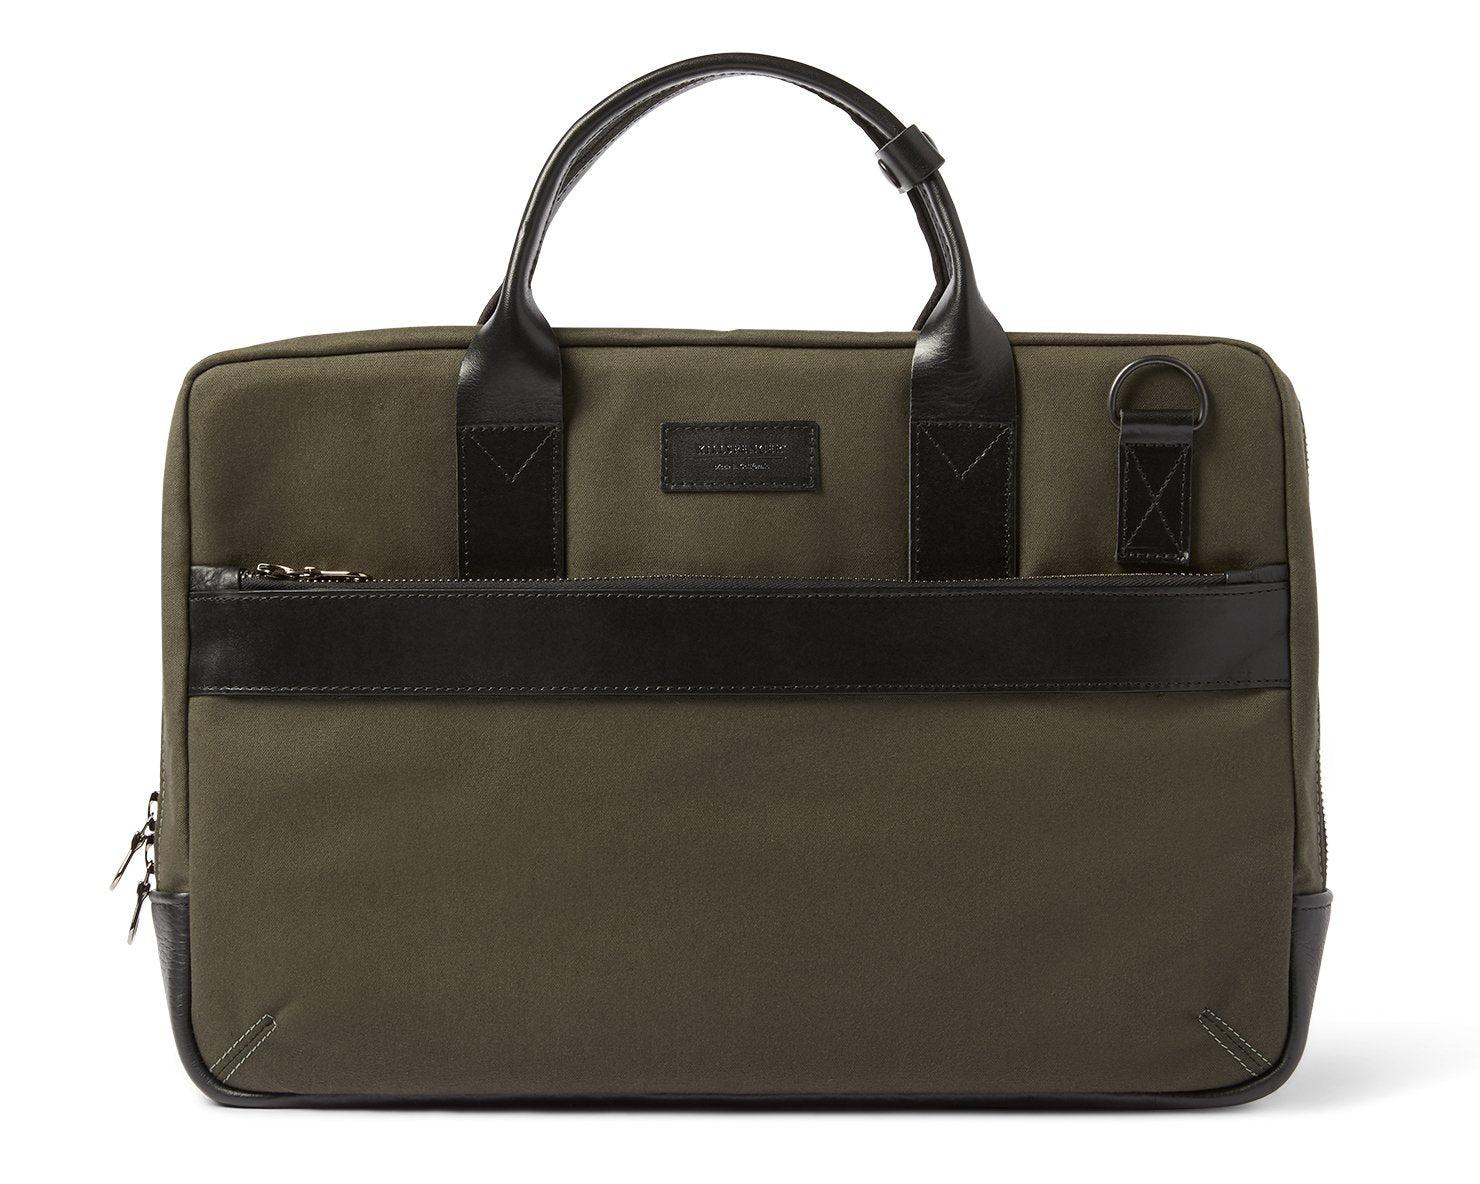 UTILITY ATTACHÉ BRIEFCASE | KILLSPENCER® - Olive Drab Canvas